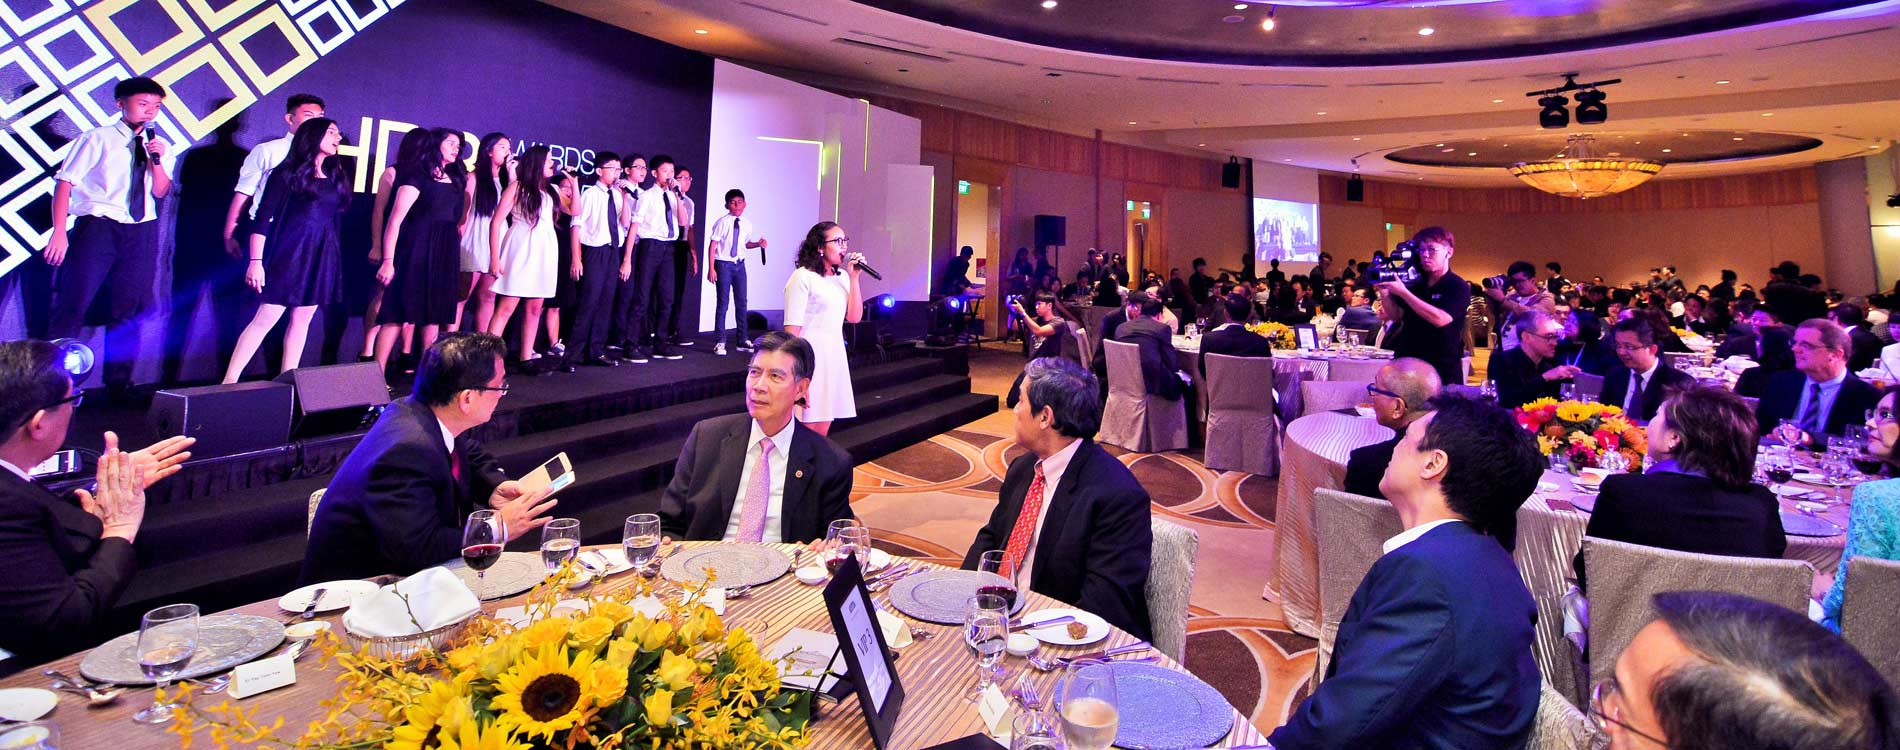 Singapore Events Management Company and Gala Awards Singapore